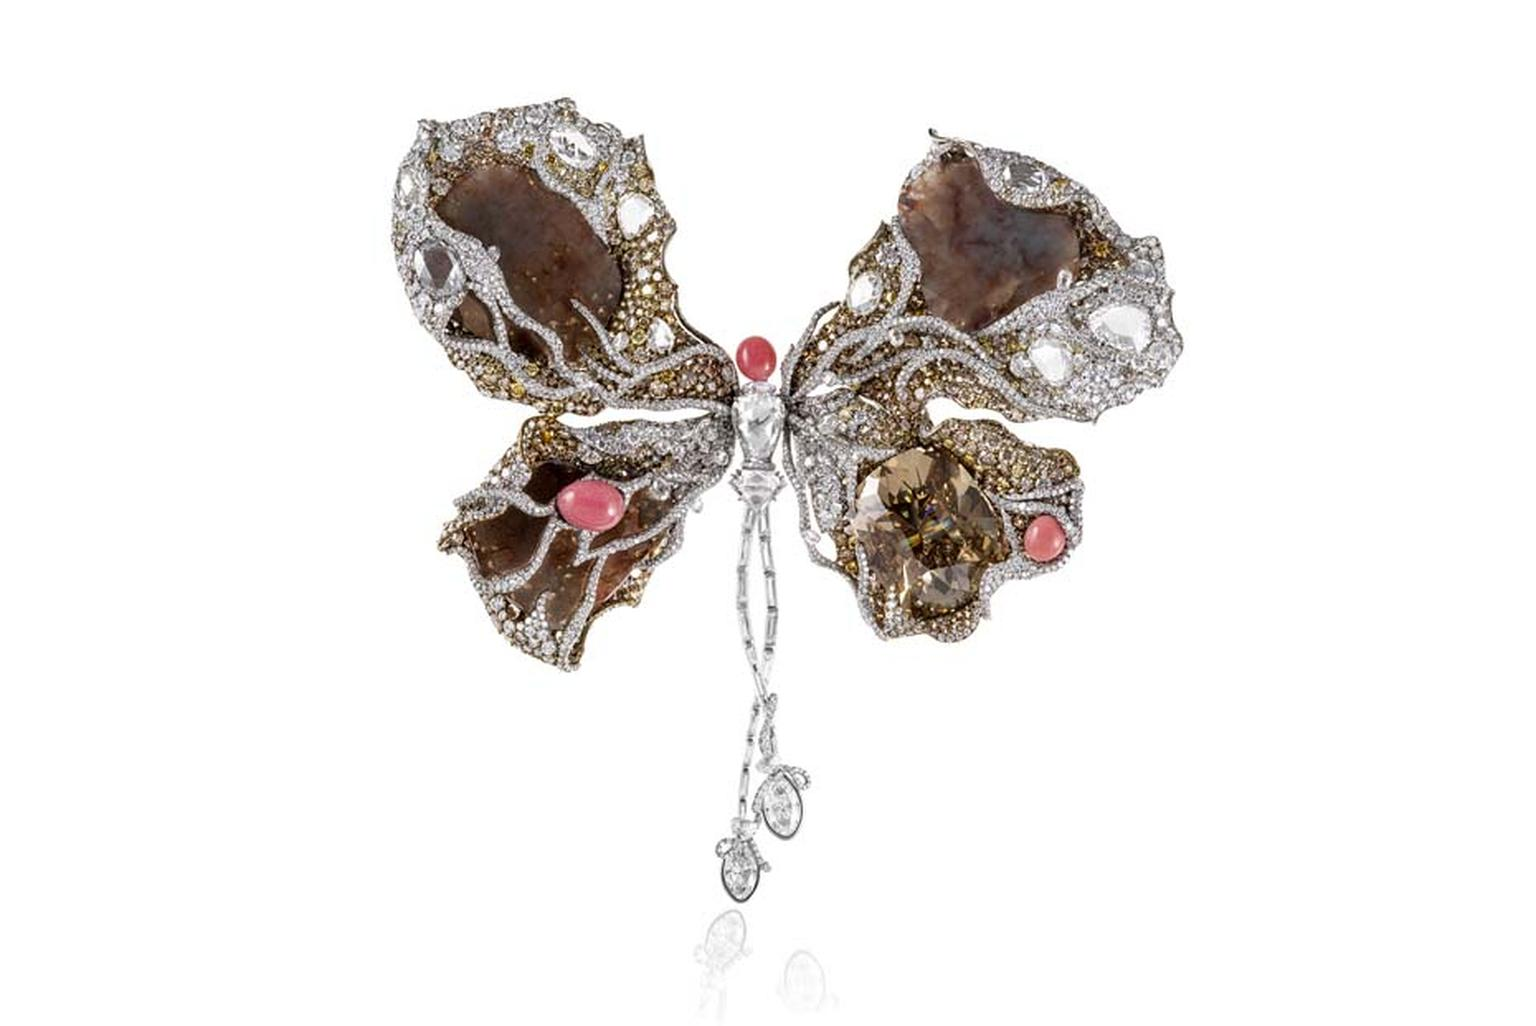 Cindy Chao gold and titanium 2014 Black Label Masterpiece Ballerina Butterfly brooch, designed in collaboration with Sarah Jessica Parker. The brooch features a 26.27ct cushion-cut fancy brown diamond as well as three rough brown diamond slices totalling